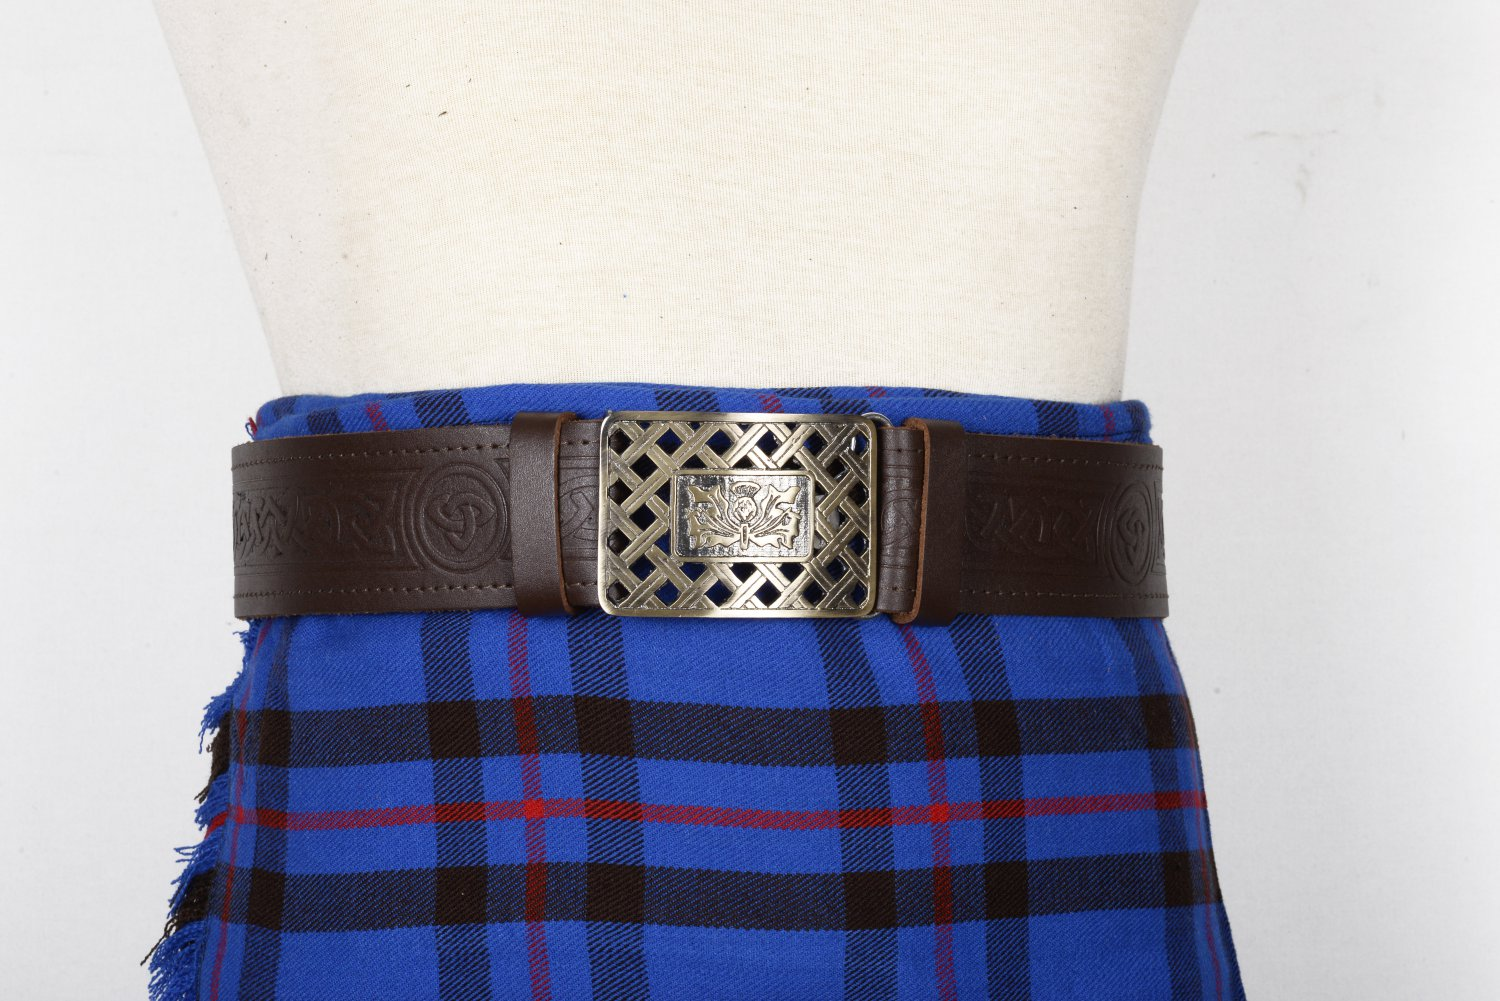 Traditional Scottish Leather Brown Kilt Belt -trinity Knot Celtic Embossing - Free Buckle Size 36